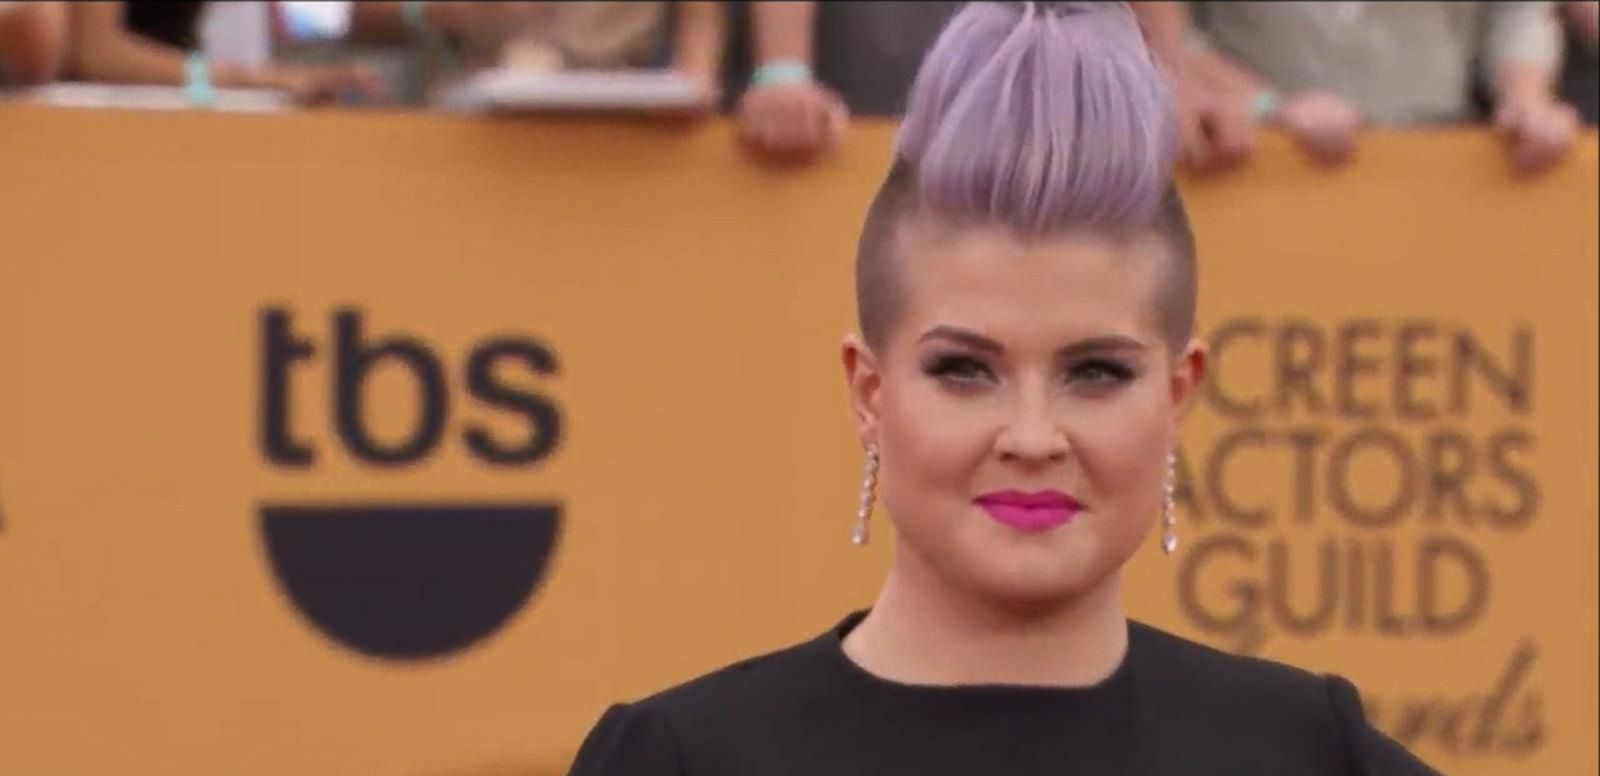 VIDEO: Kelly Osbourne 'Fashion Police' Exit Resulted From Oscar Controversy